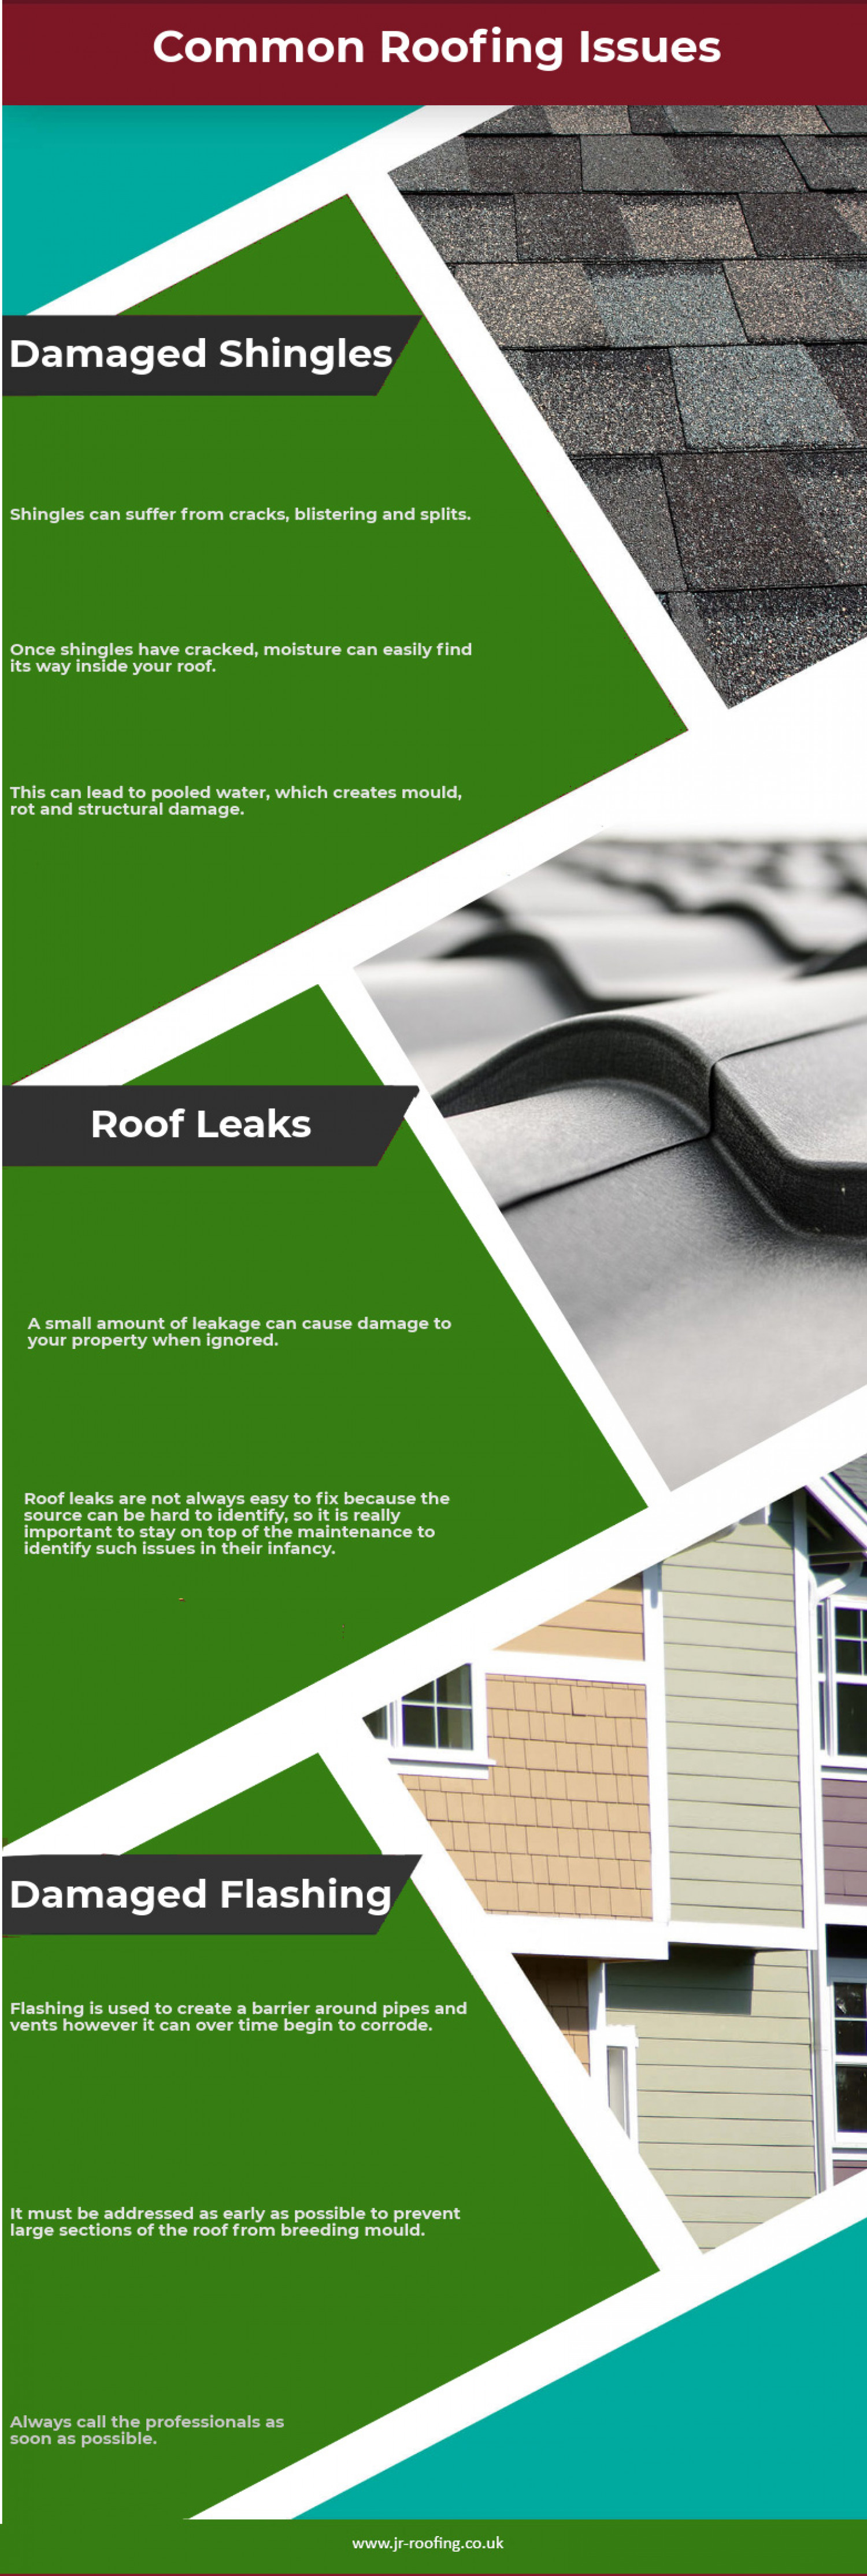 Common Roofing Issues Infographic